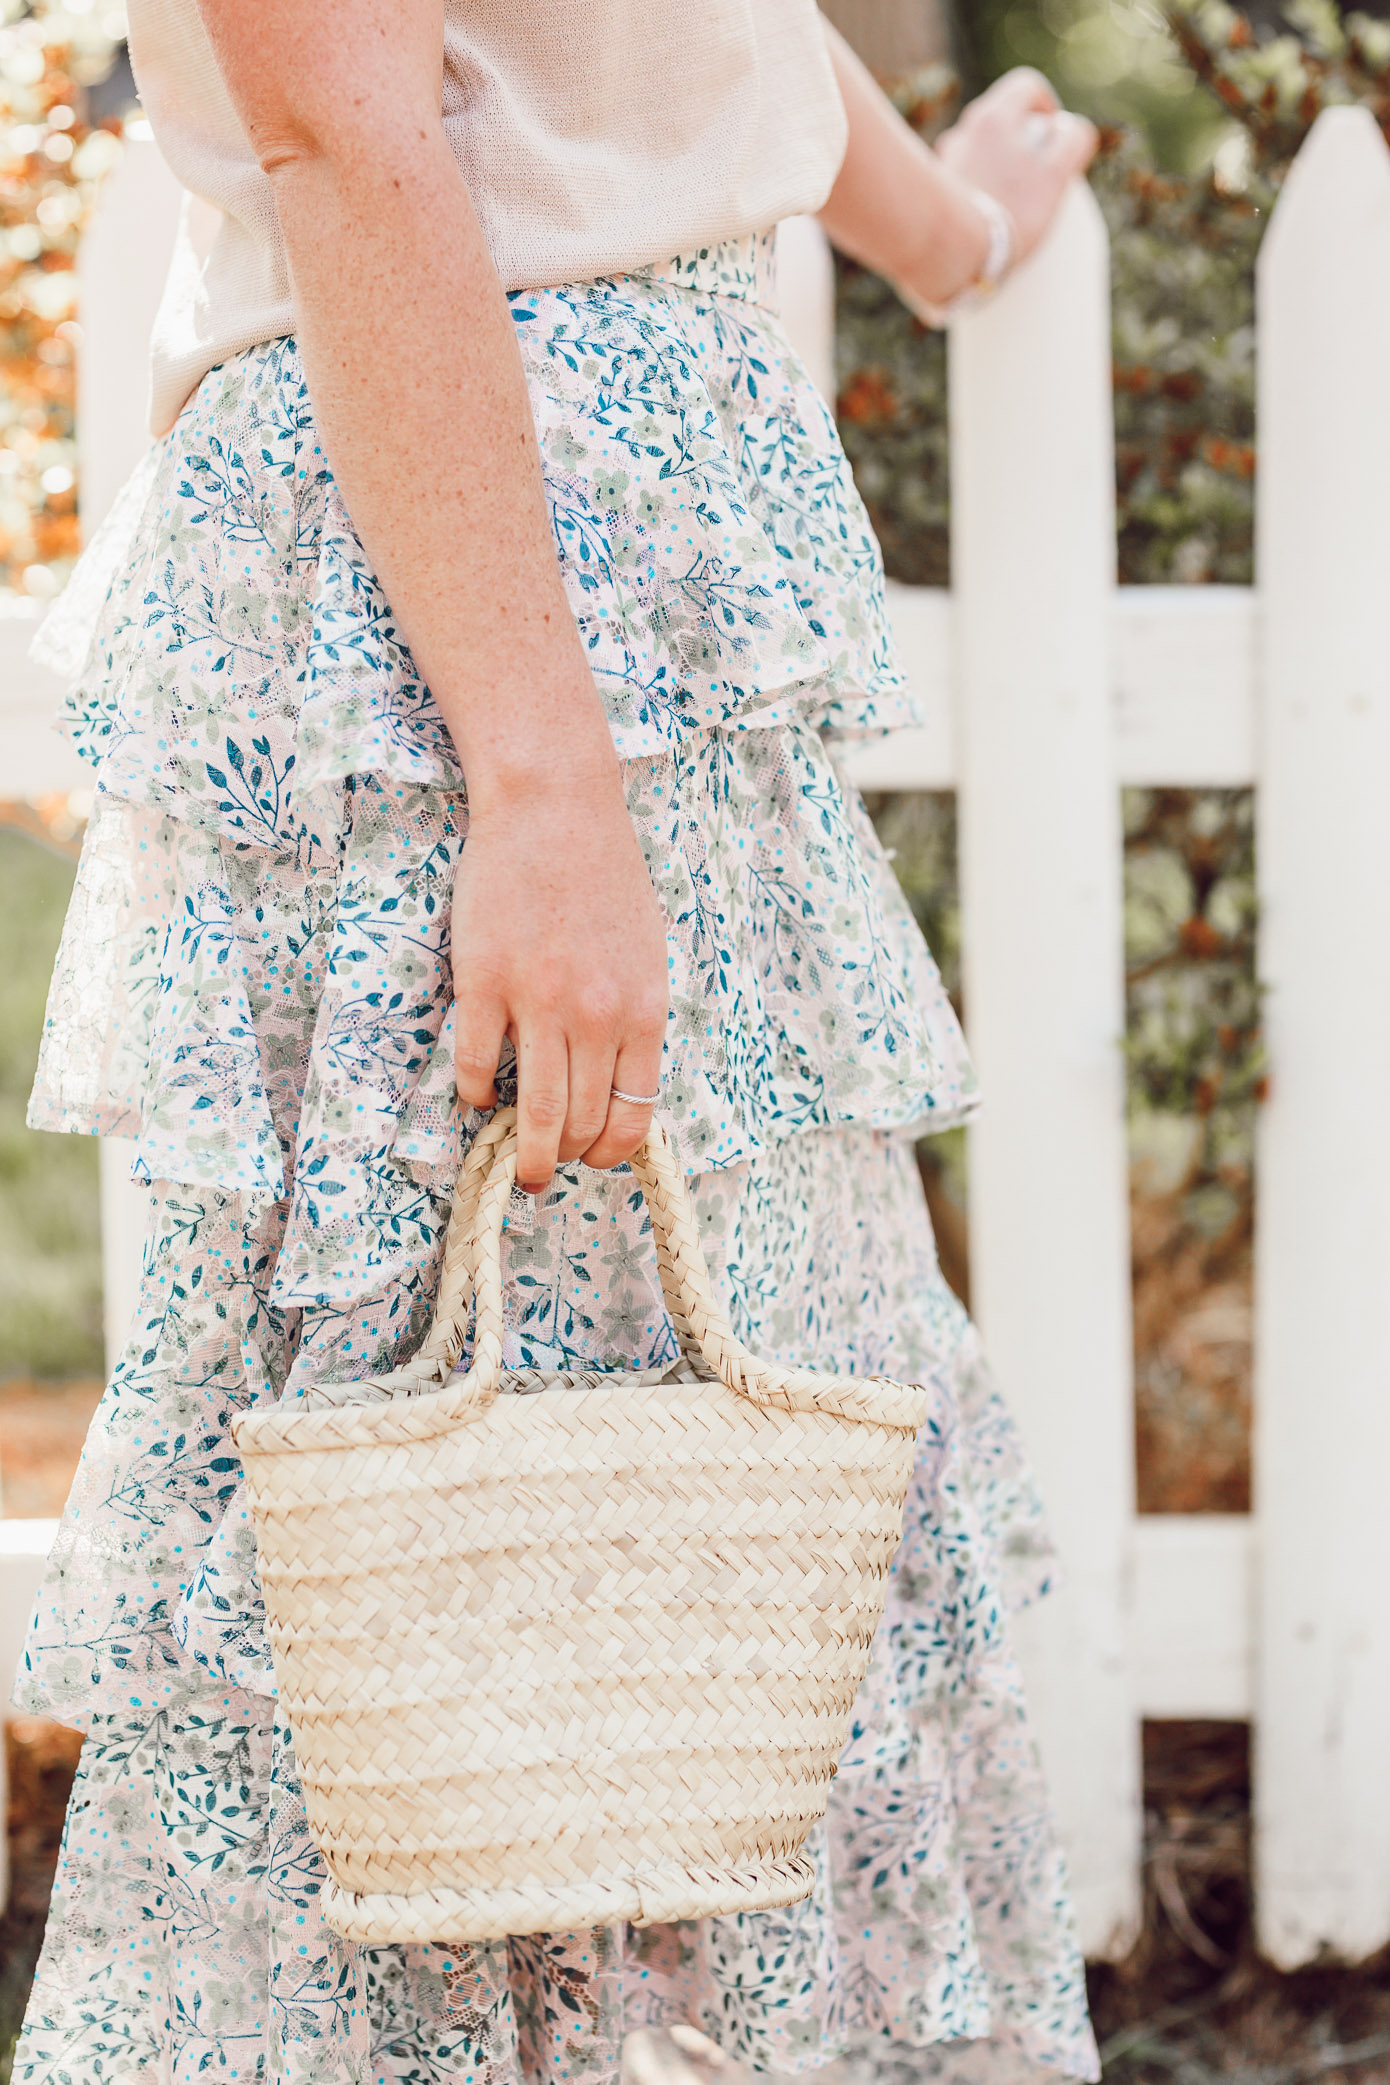 The cutest straw bags to complete every summer outfit | Mini Straw Tote | Louella Reese